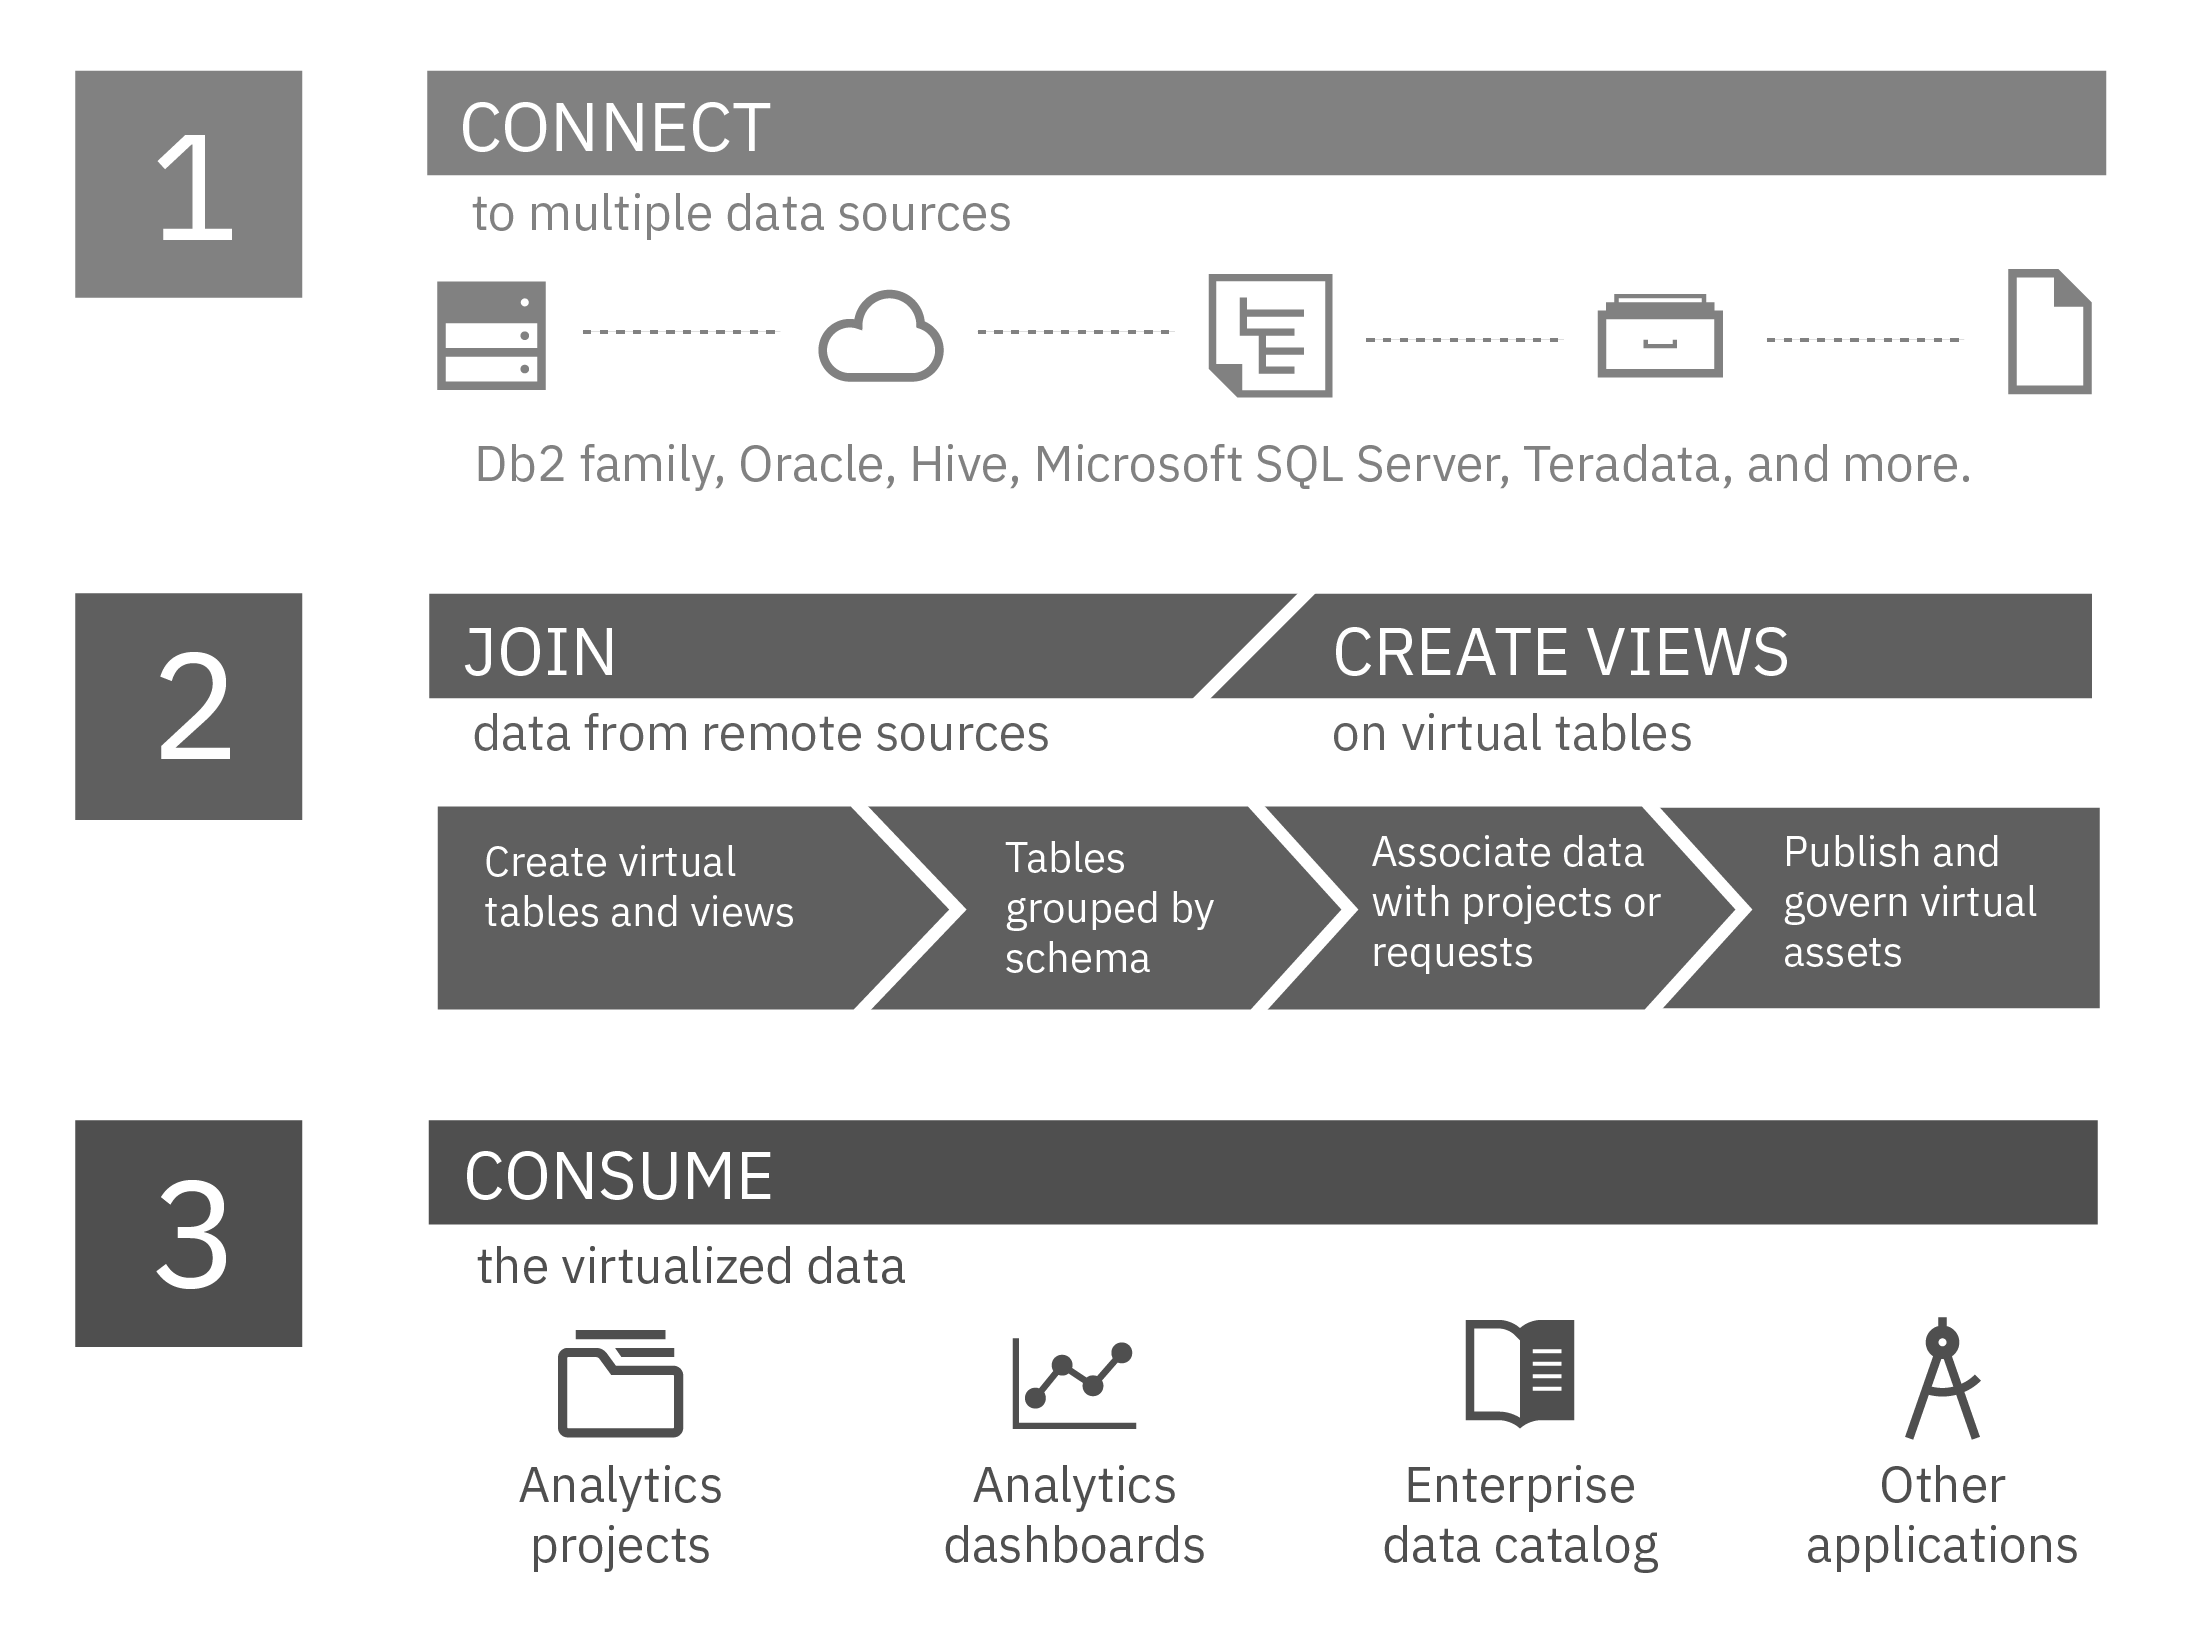 Connect, Join, Create Views, and Consume are the main actions that are needed for Data Virtualization.